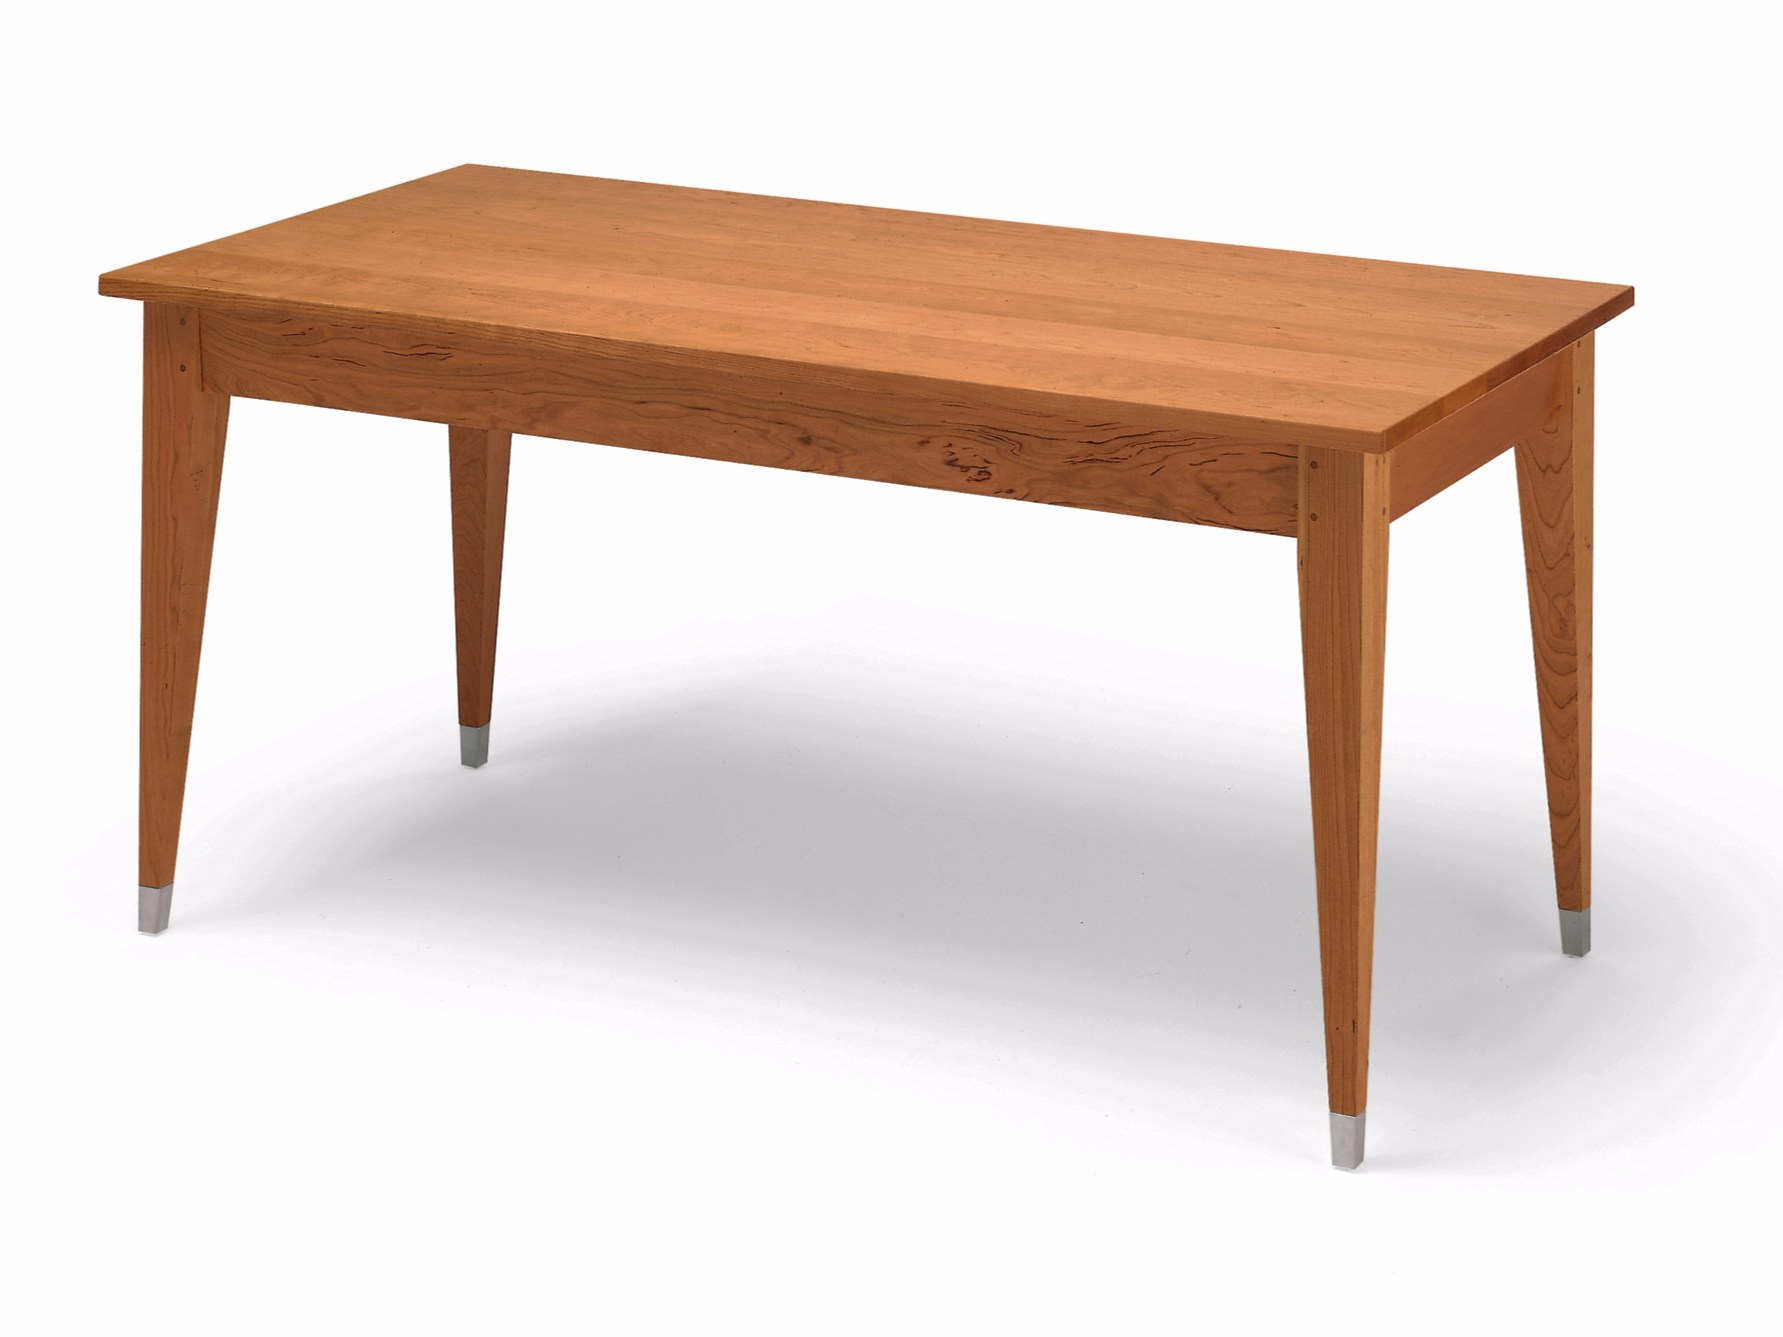 Extending solid wood dining table denver by riva 1920 design maurizio riva davide riva - Extending wood dining table ...